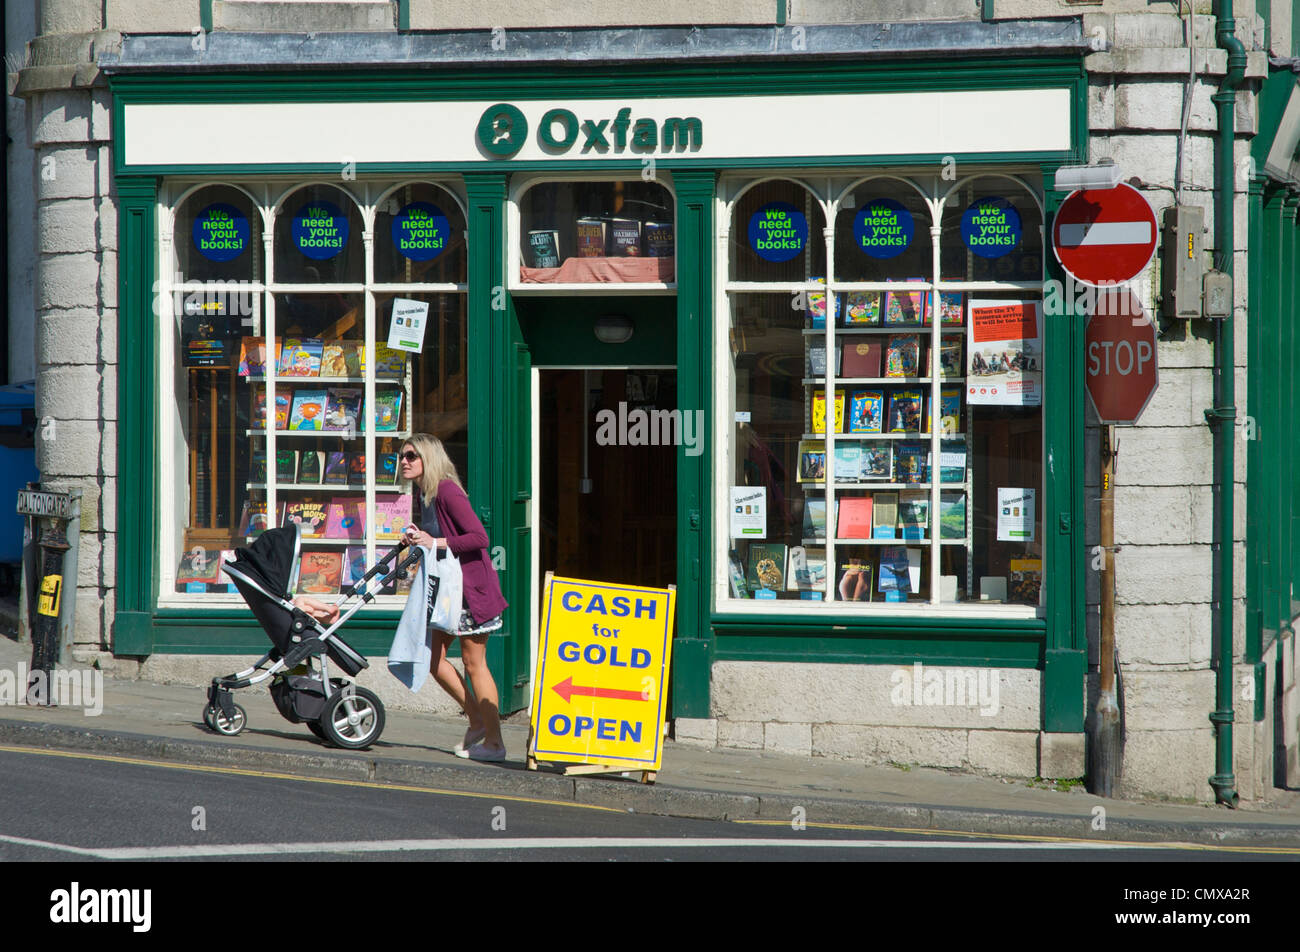 Young woman with pushchair outside Oxfam charity shop, in Ulverston, Cumbria, England UK Stock Photo